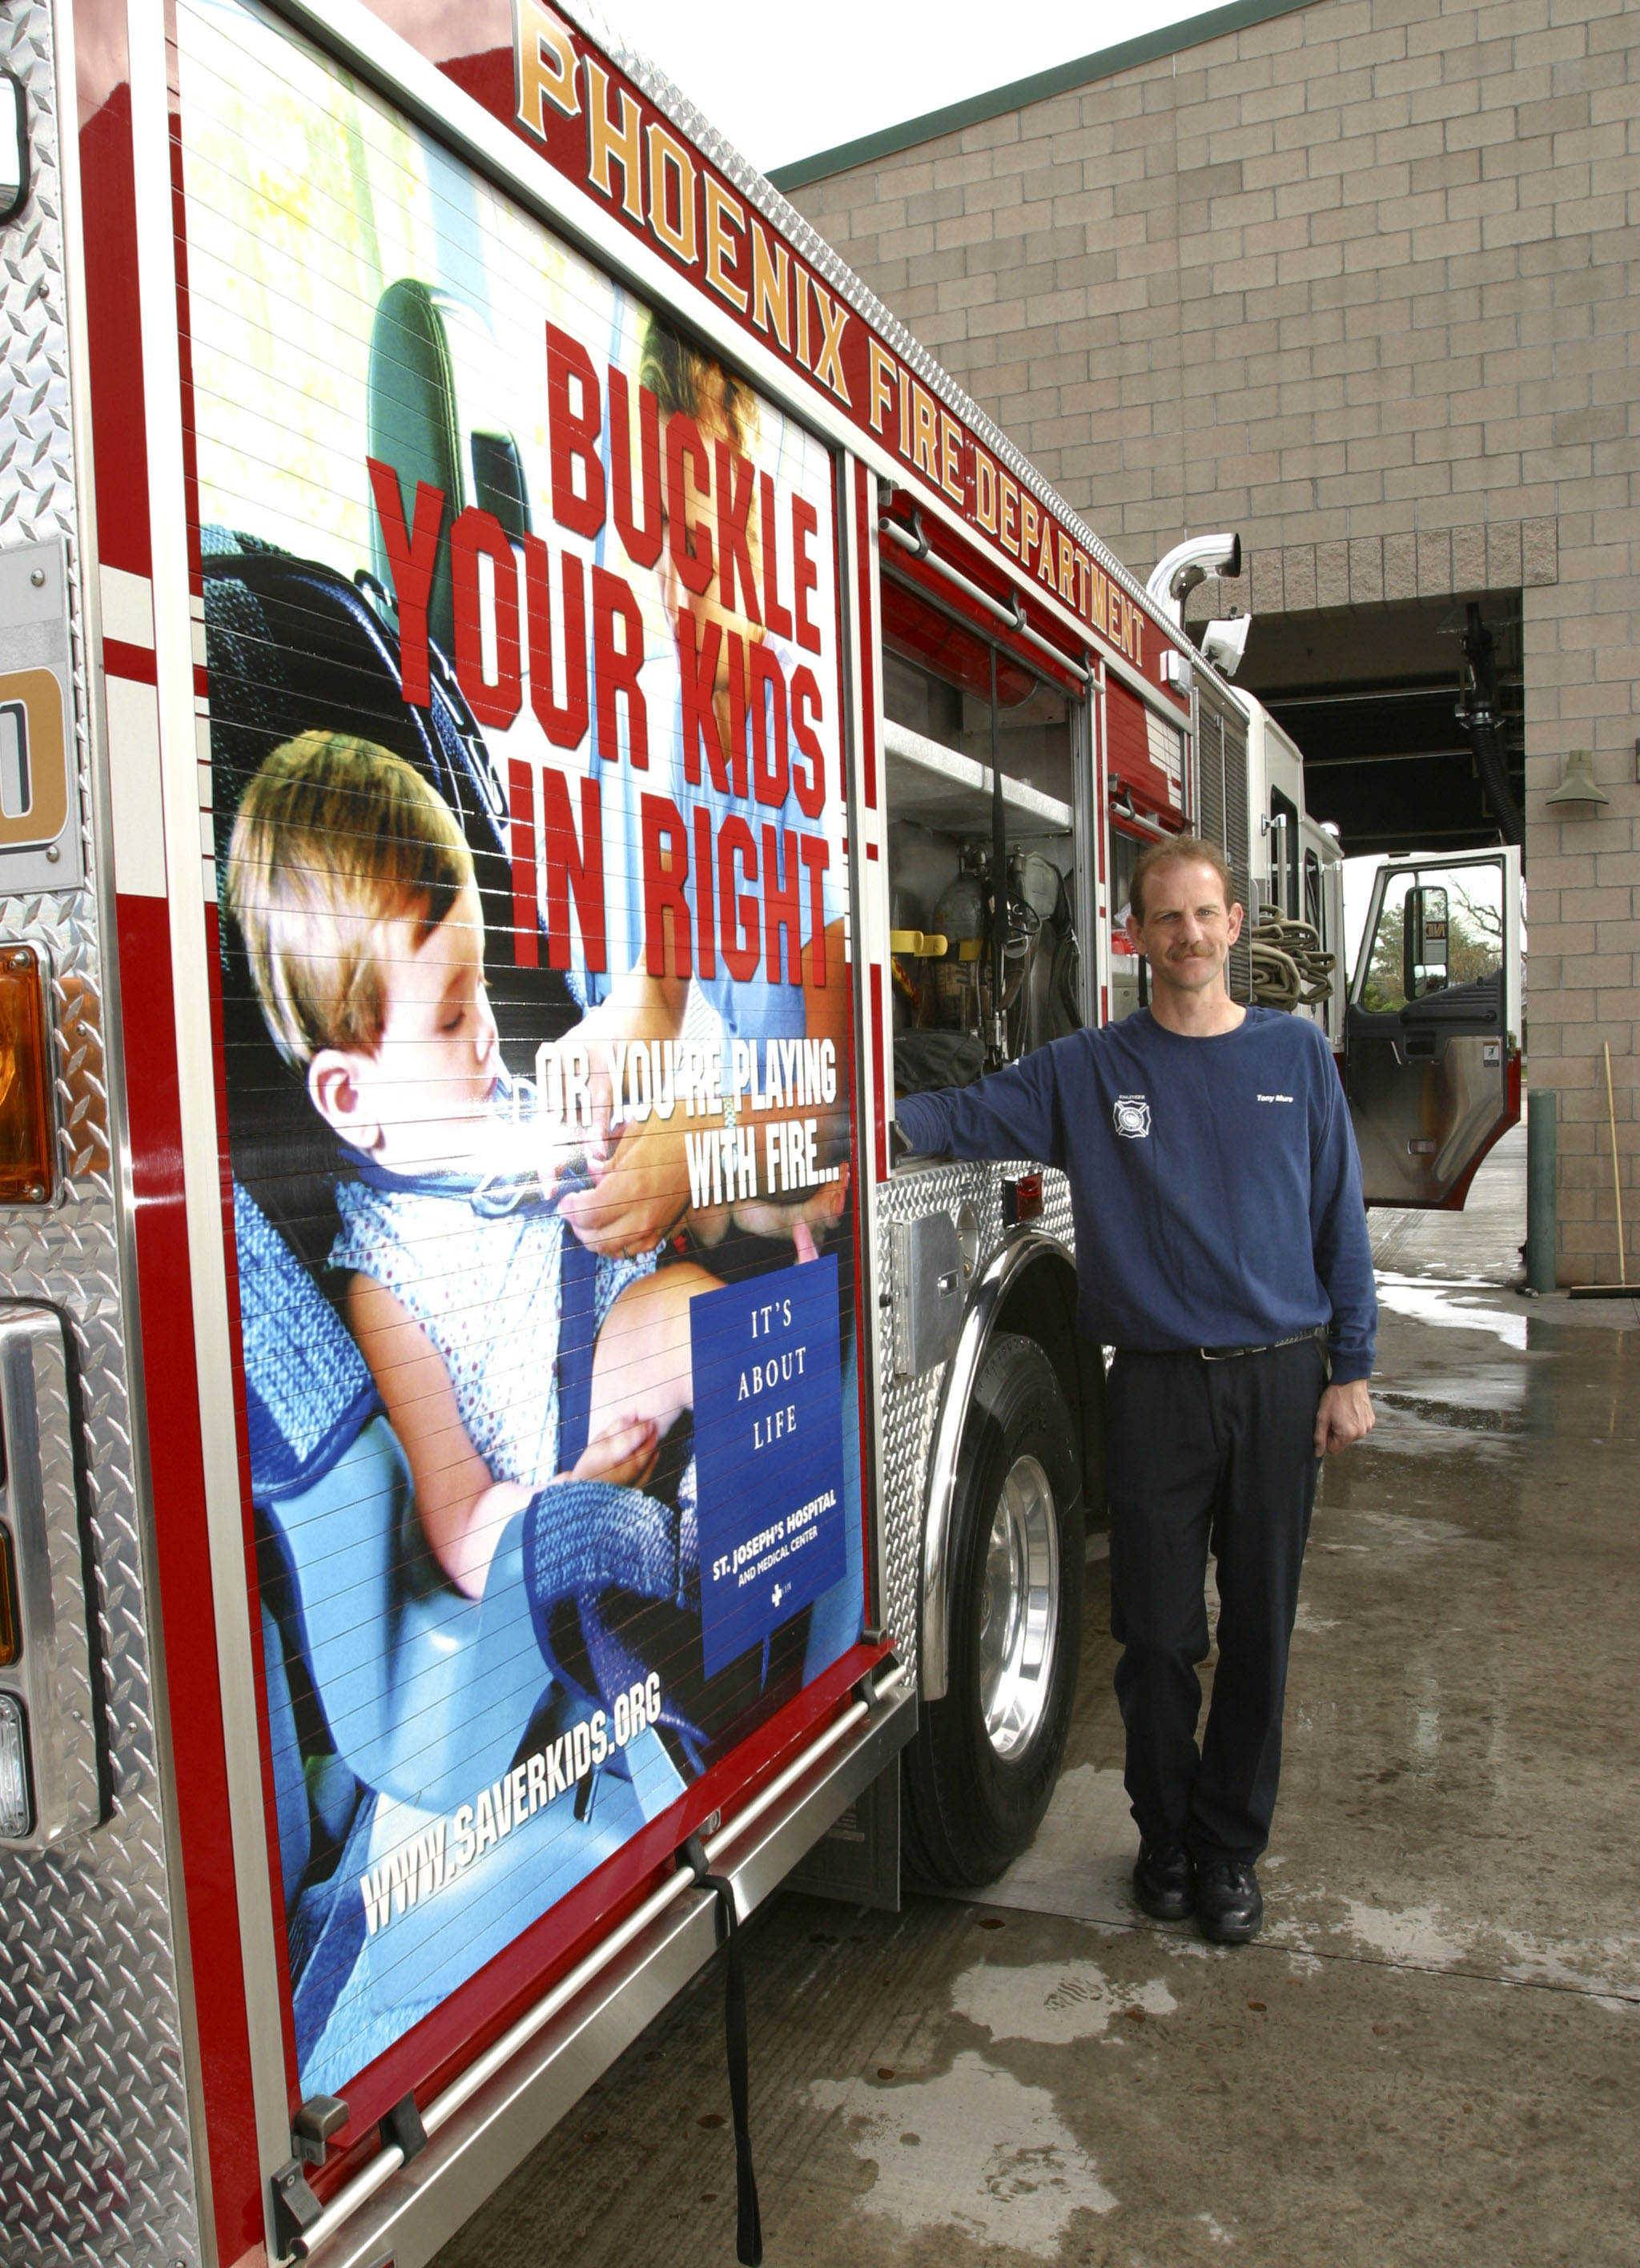 Phoenix, Ariz., Fire Department Captain Tony Mure of Station 30 shows off an ad on a fire engine. Ten fire trucks are carrying public safety messages about watching children around water and buckling up.